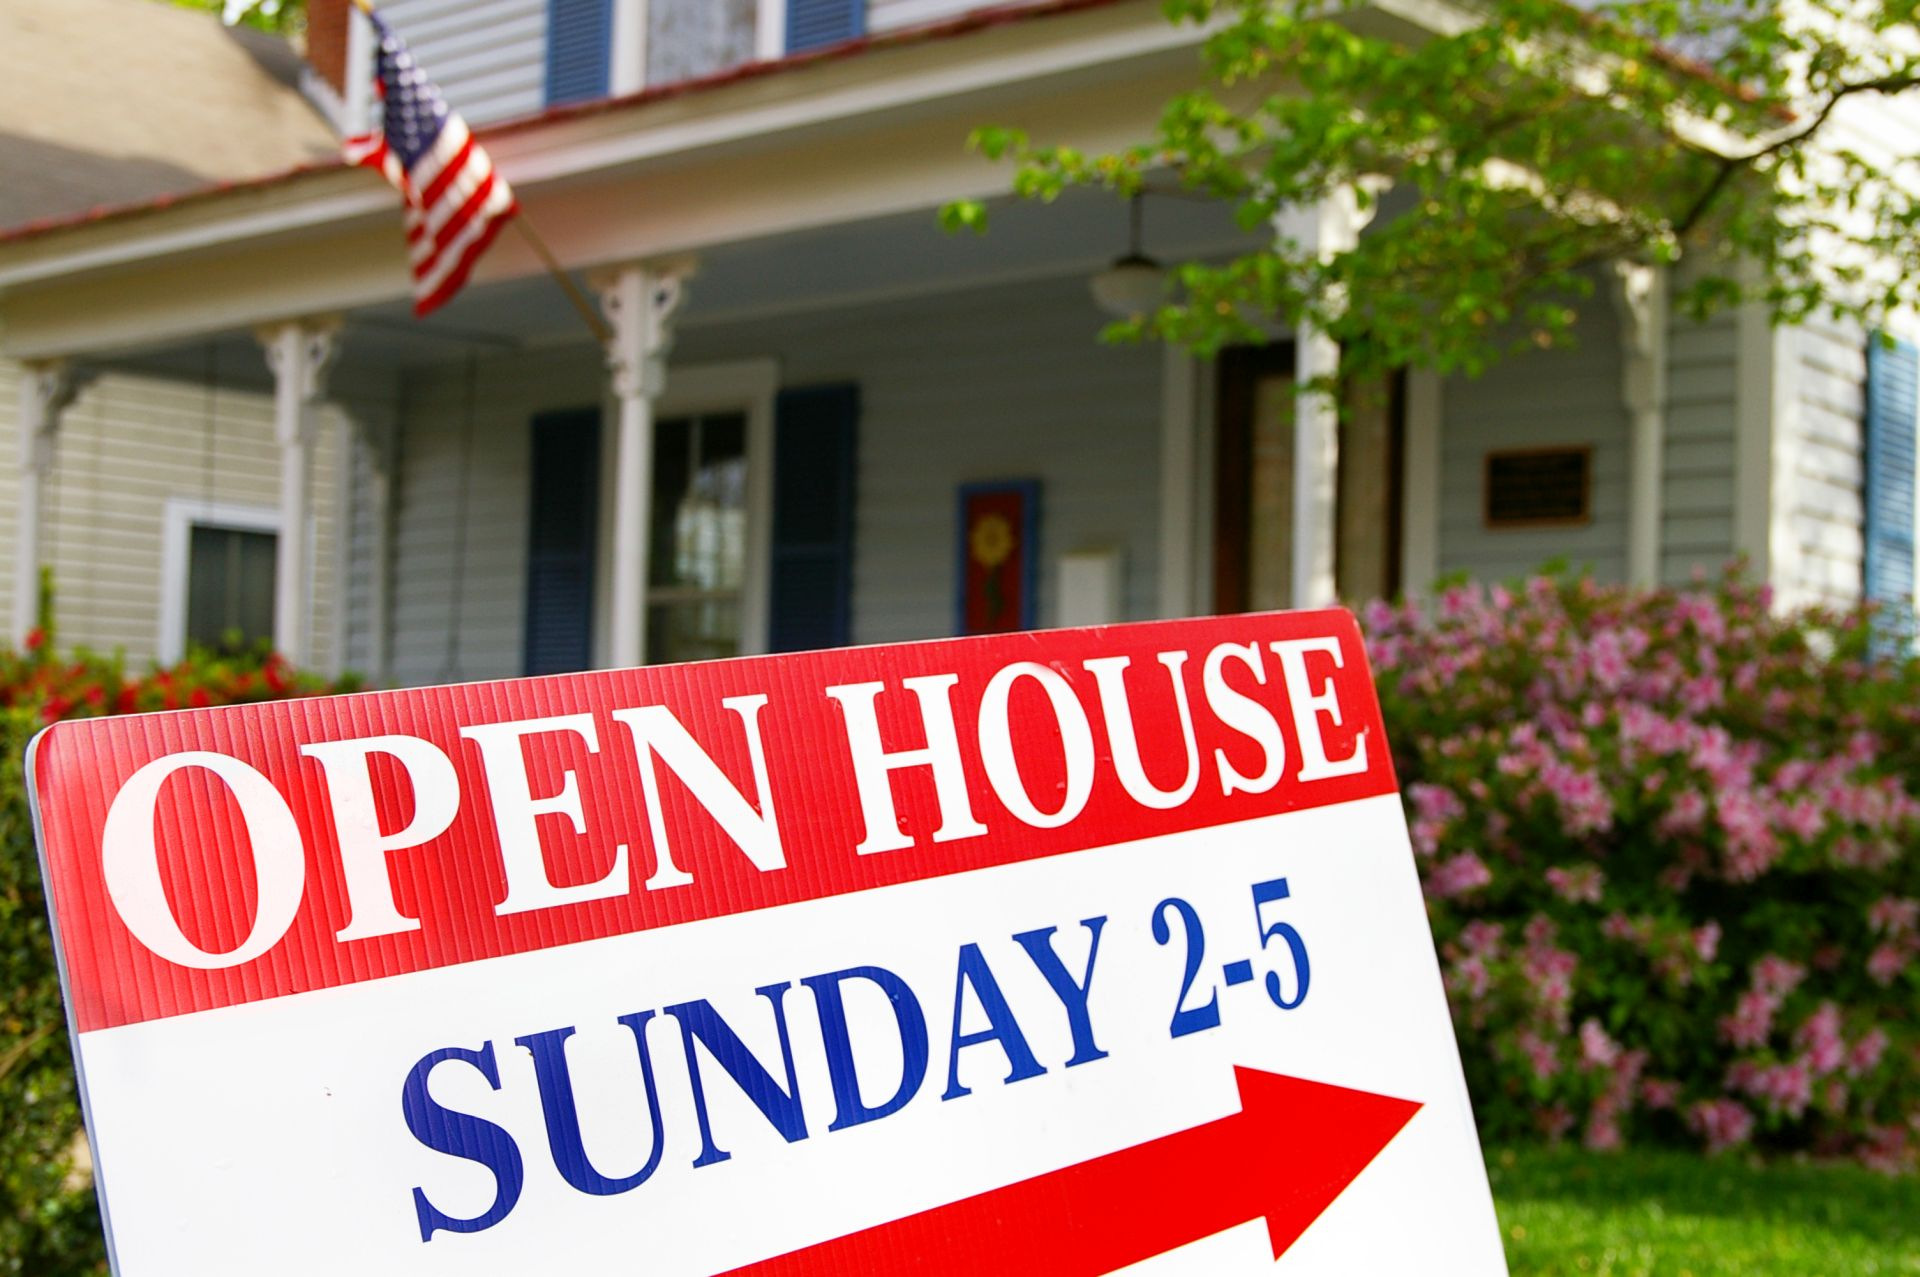 Open house sign in front of a home for sale